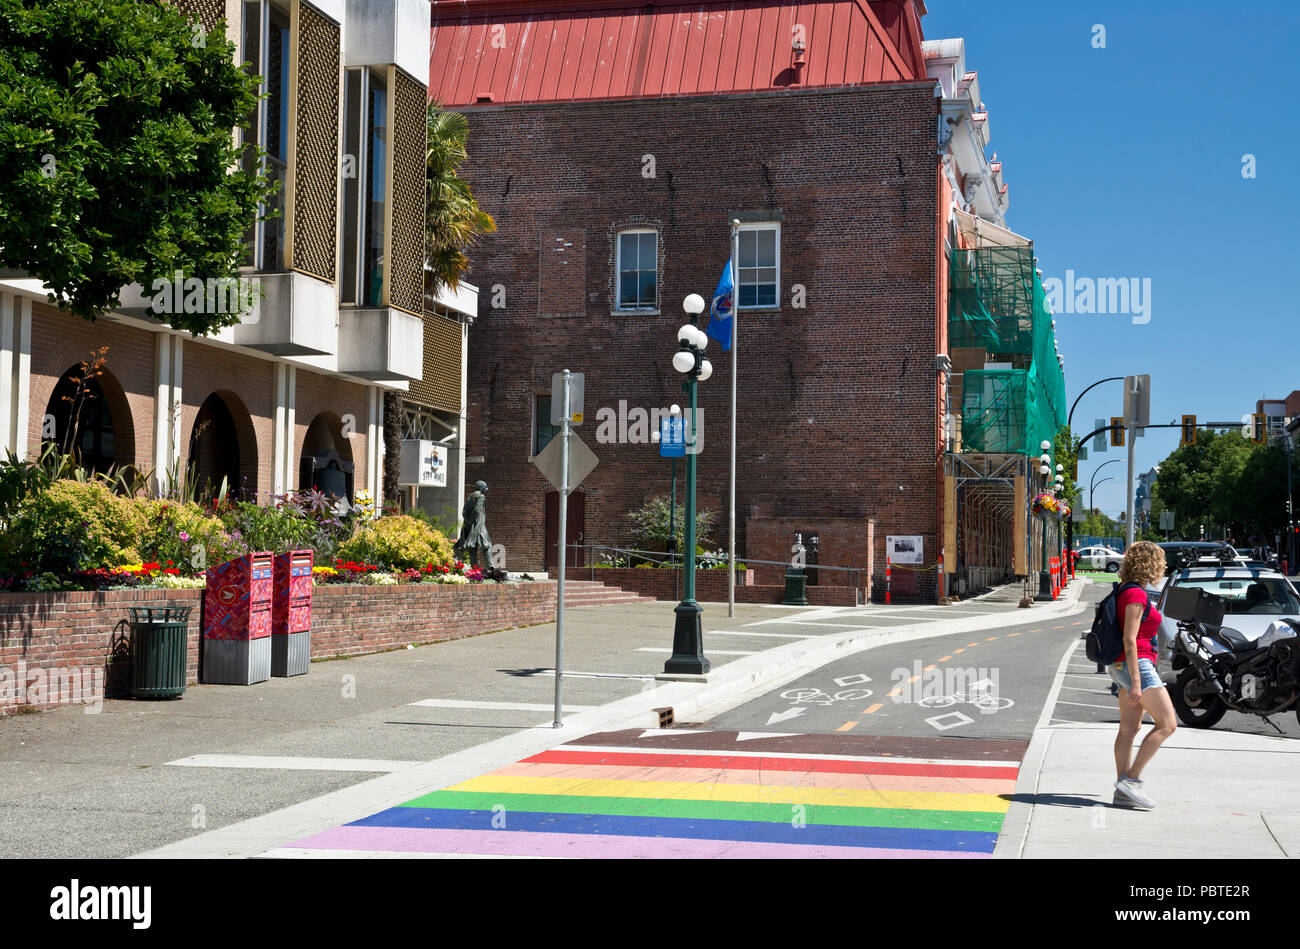 Rainbow crosswalk across bike lanes in downtown Victoria, BC, Canada. - Stock Image